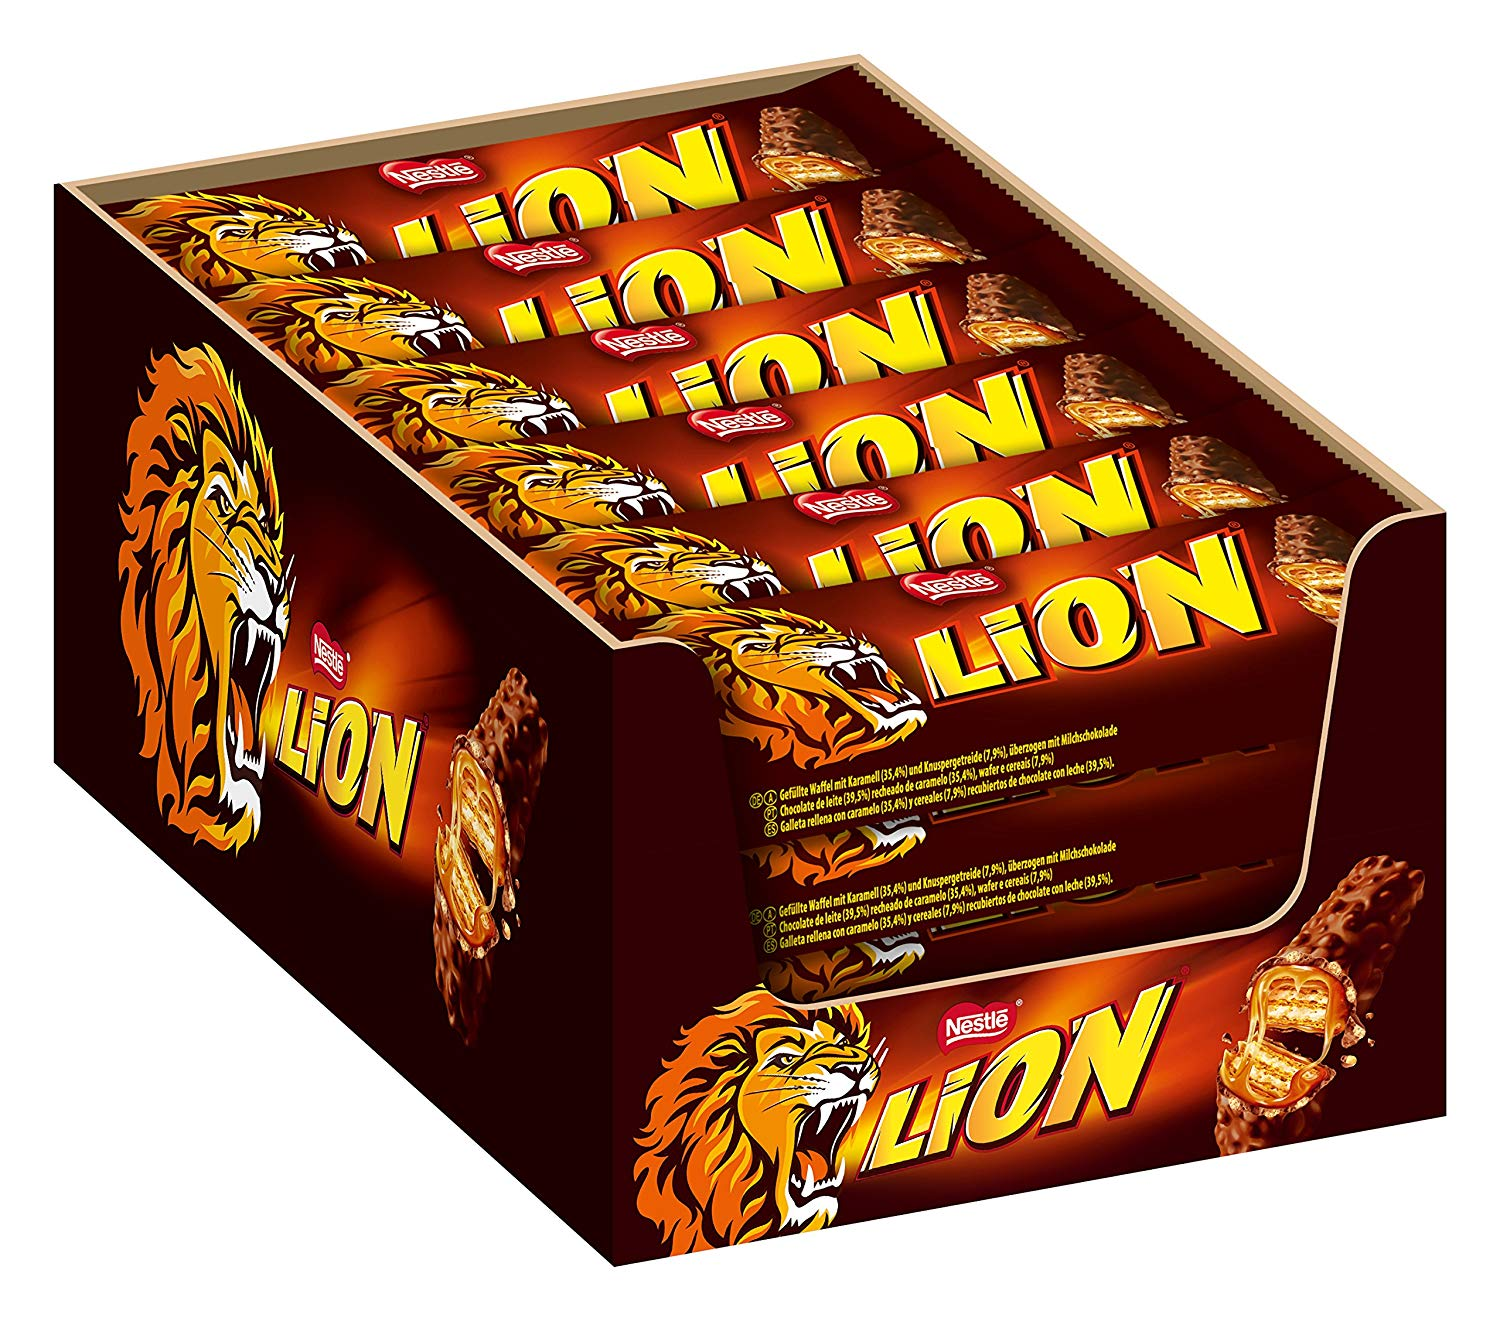 Lion Nestle Megapack amazon